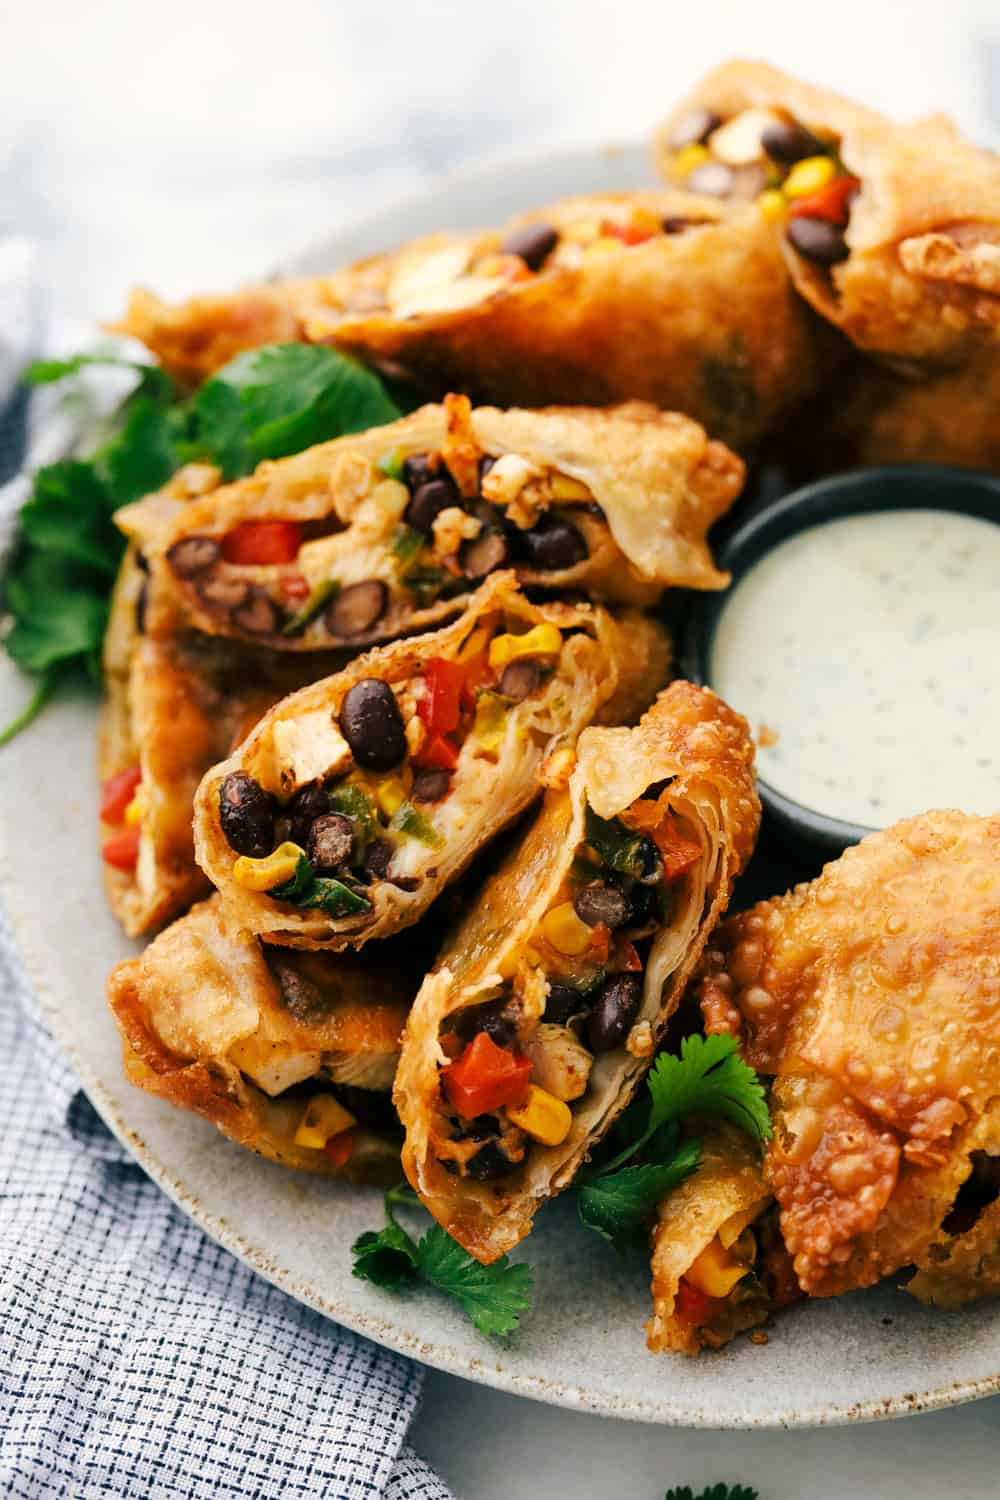 Southwest chicken egg rolls on a plate served with cilantro lime ranch dipping sauce.